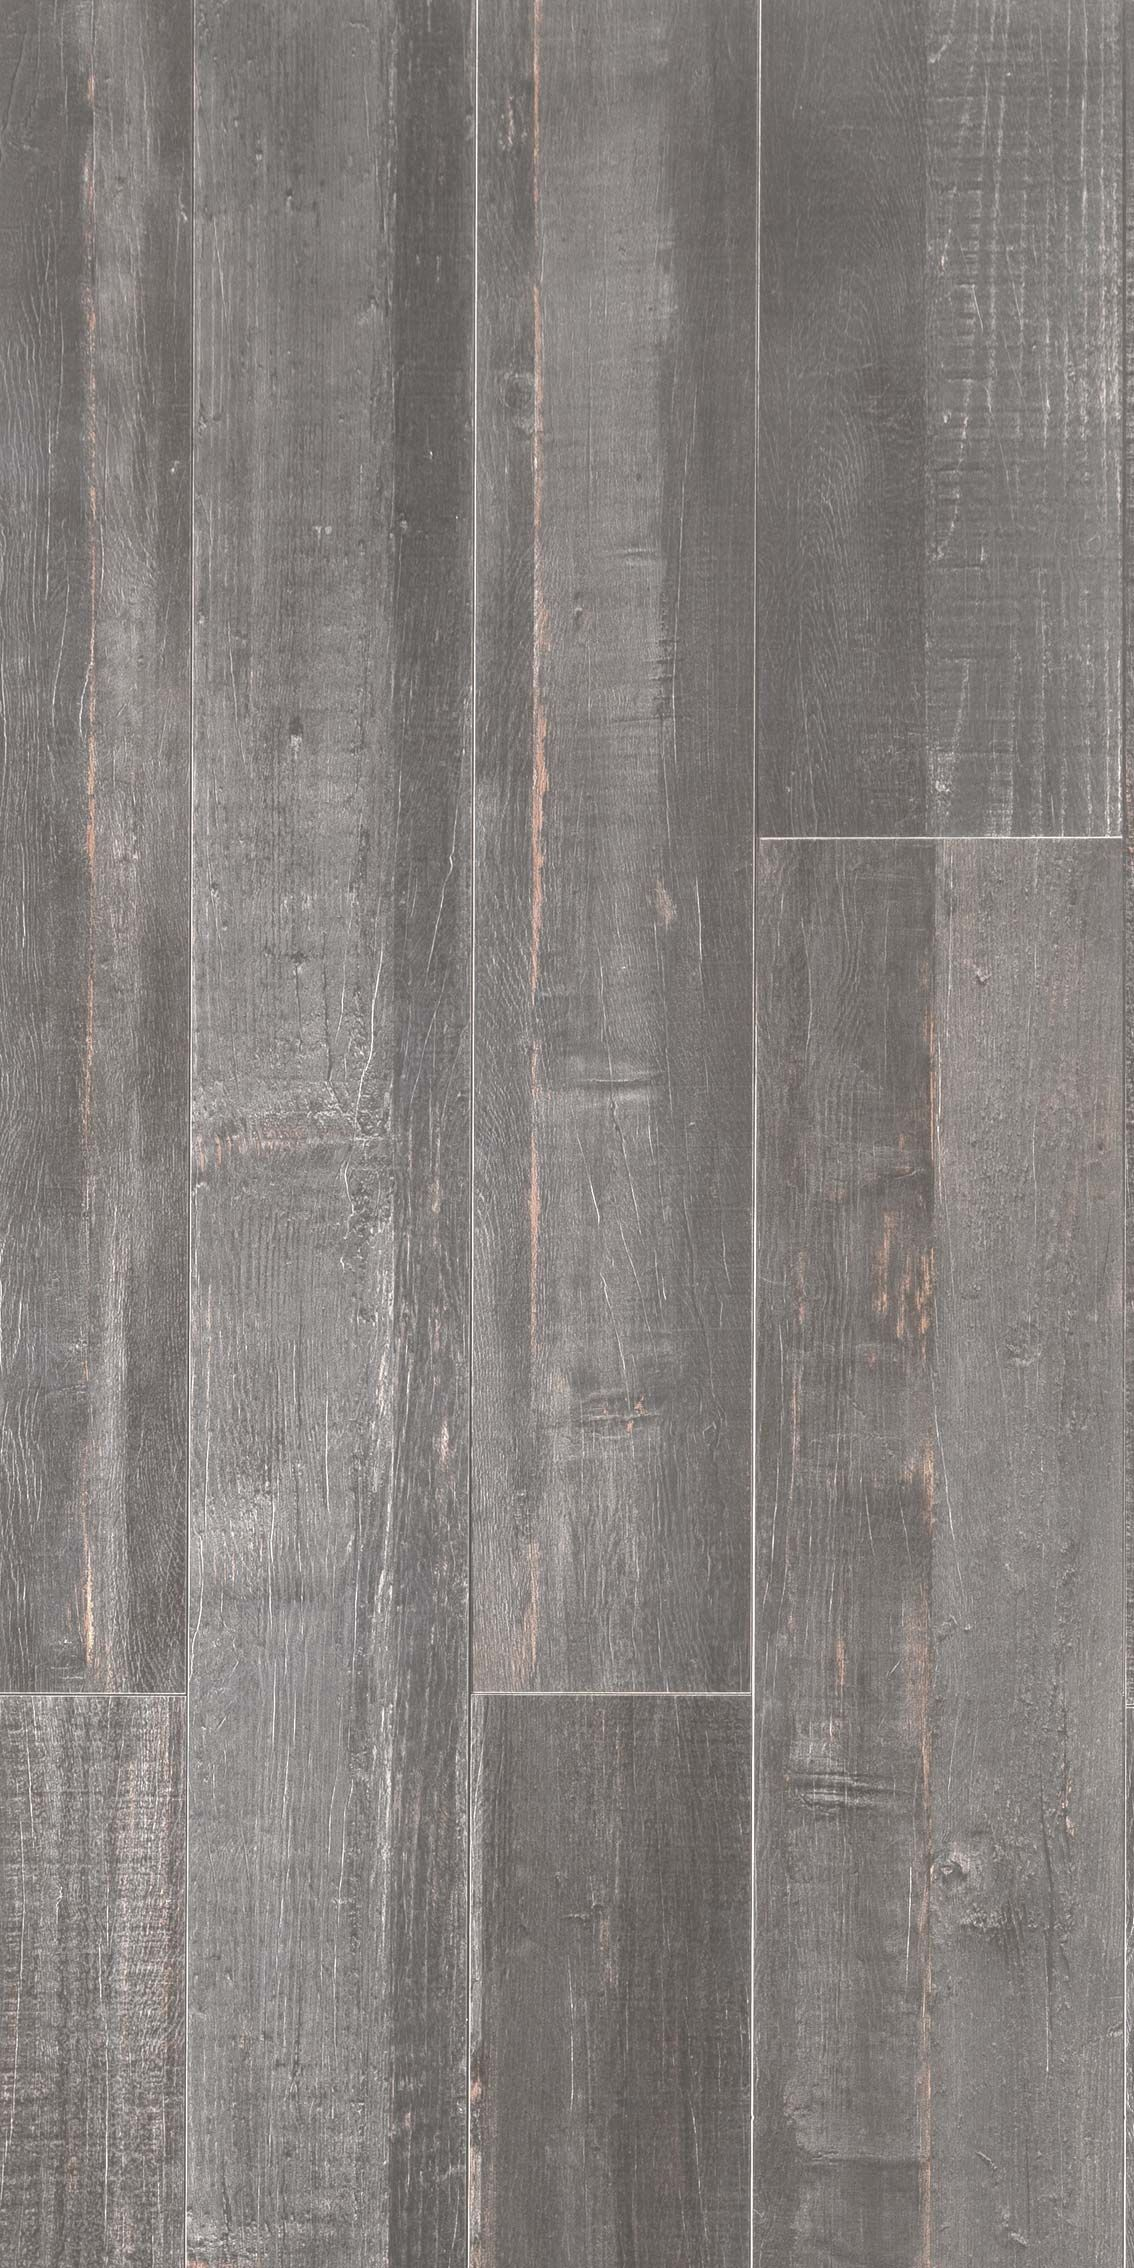 A marble and wood effect for elegant design spaces I